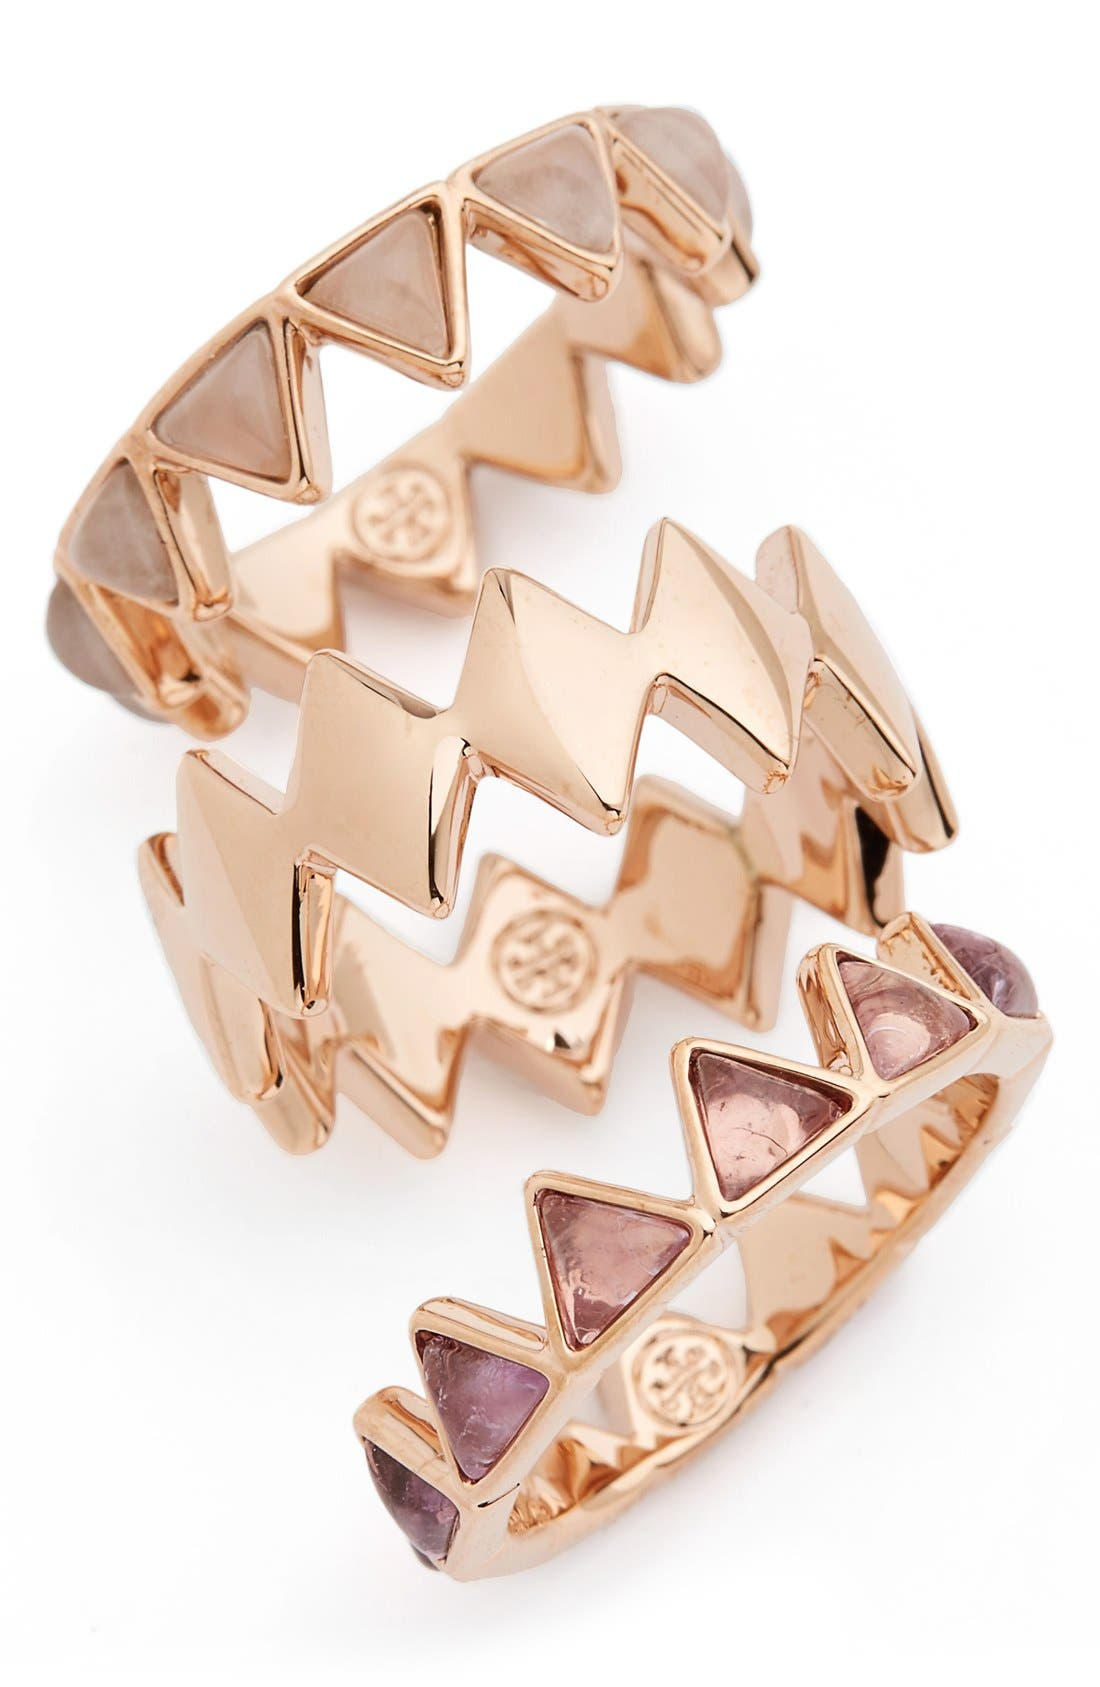 Alternate Image 1 Selected - Tory Burch 'Puzzle' Stone Rings (Set of 3)